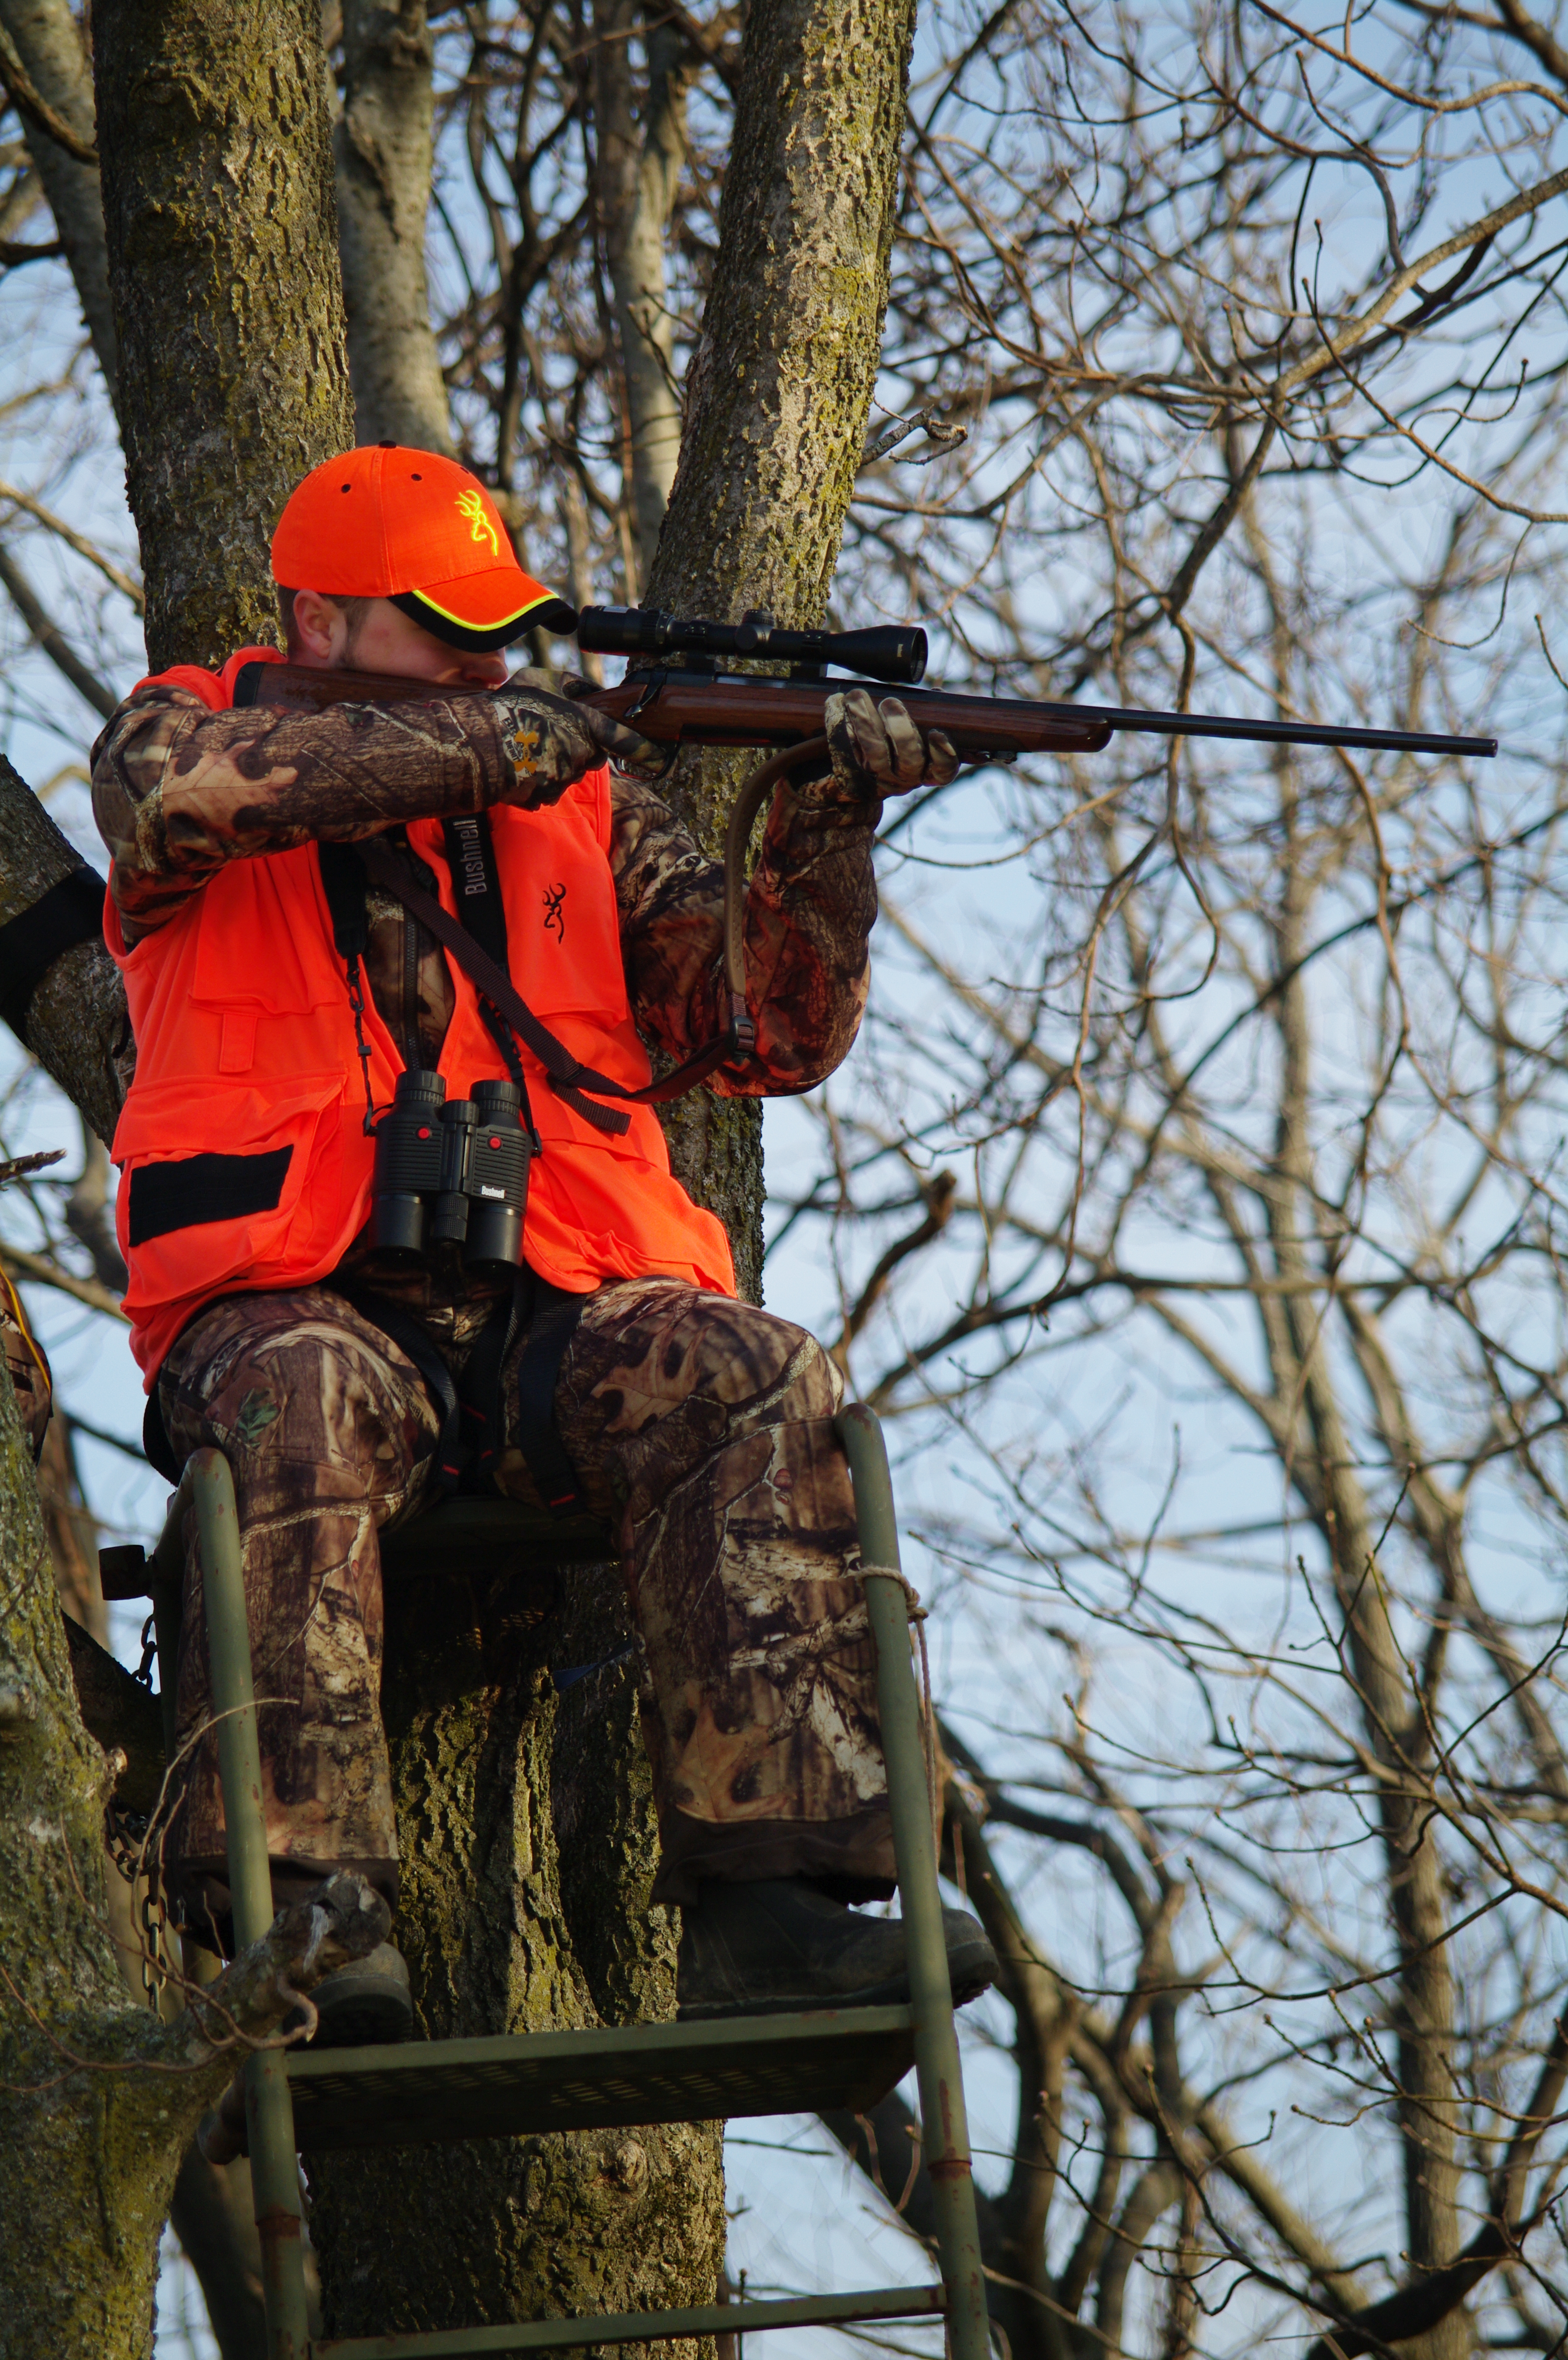 Today's modern hunter may use everything from a modern sporting rifle like this one to a traditional bow, wearing performance clothing or old school wool. Today's hunter spans the gamut.